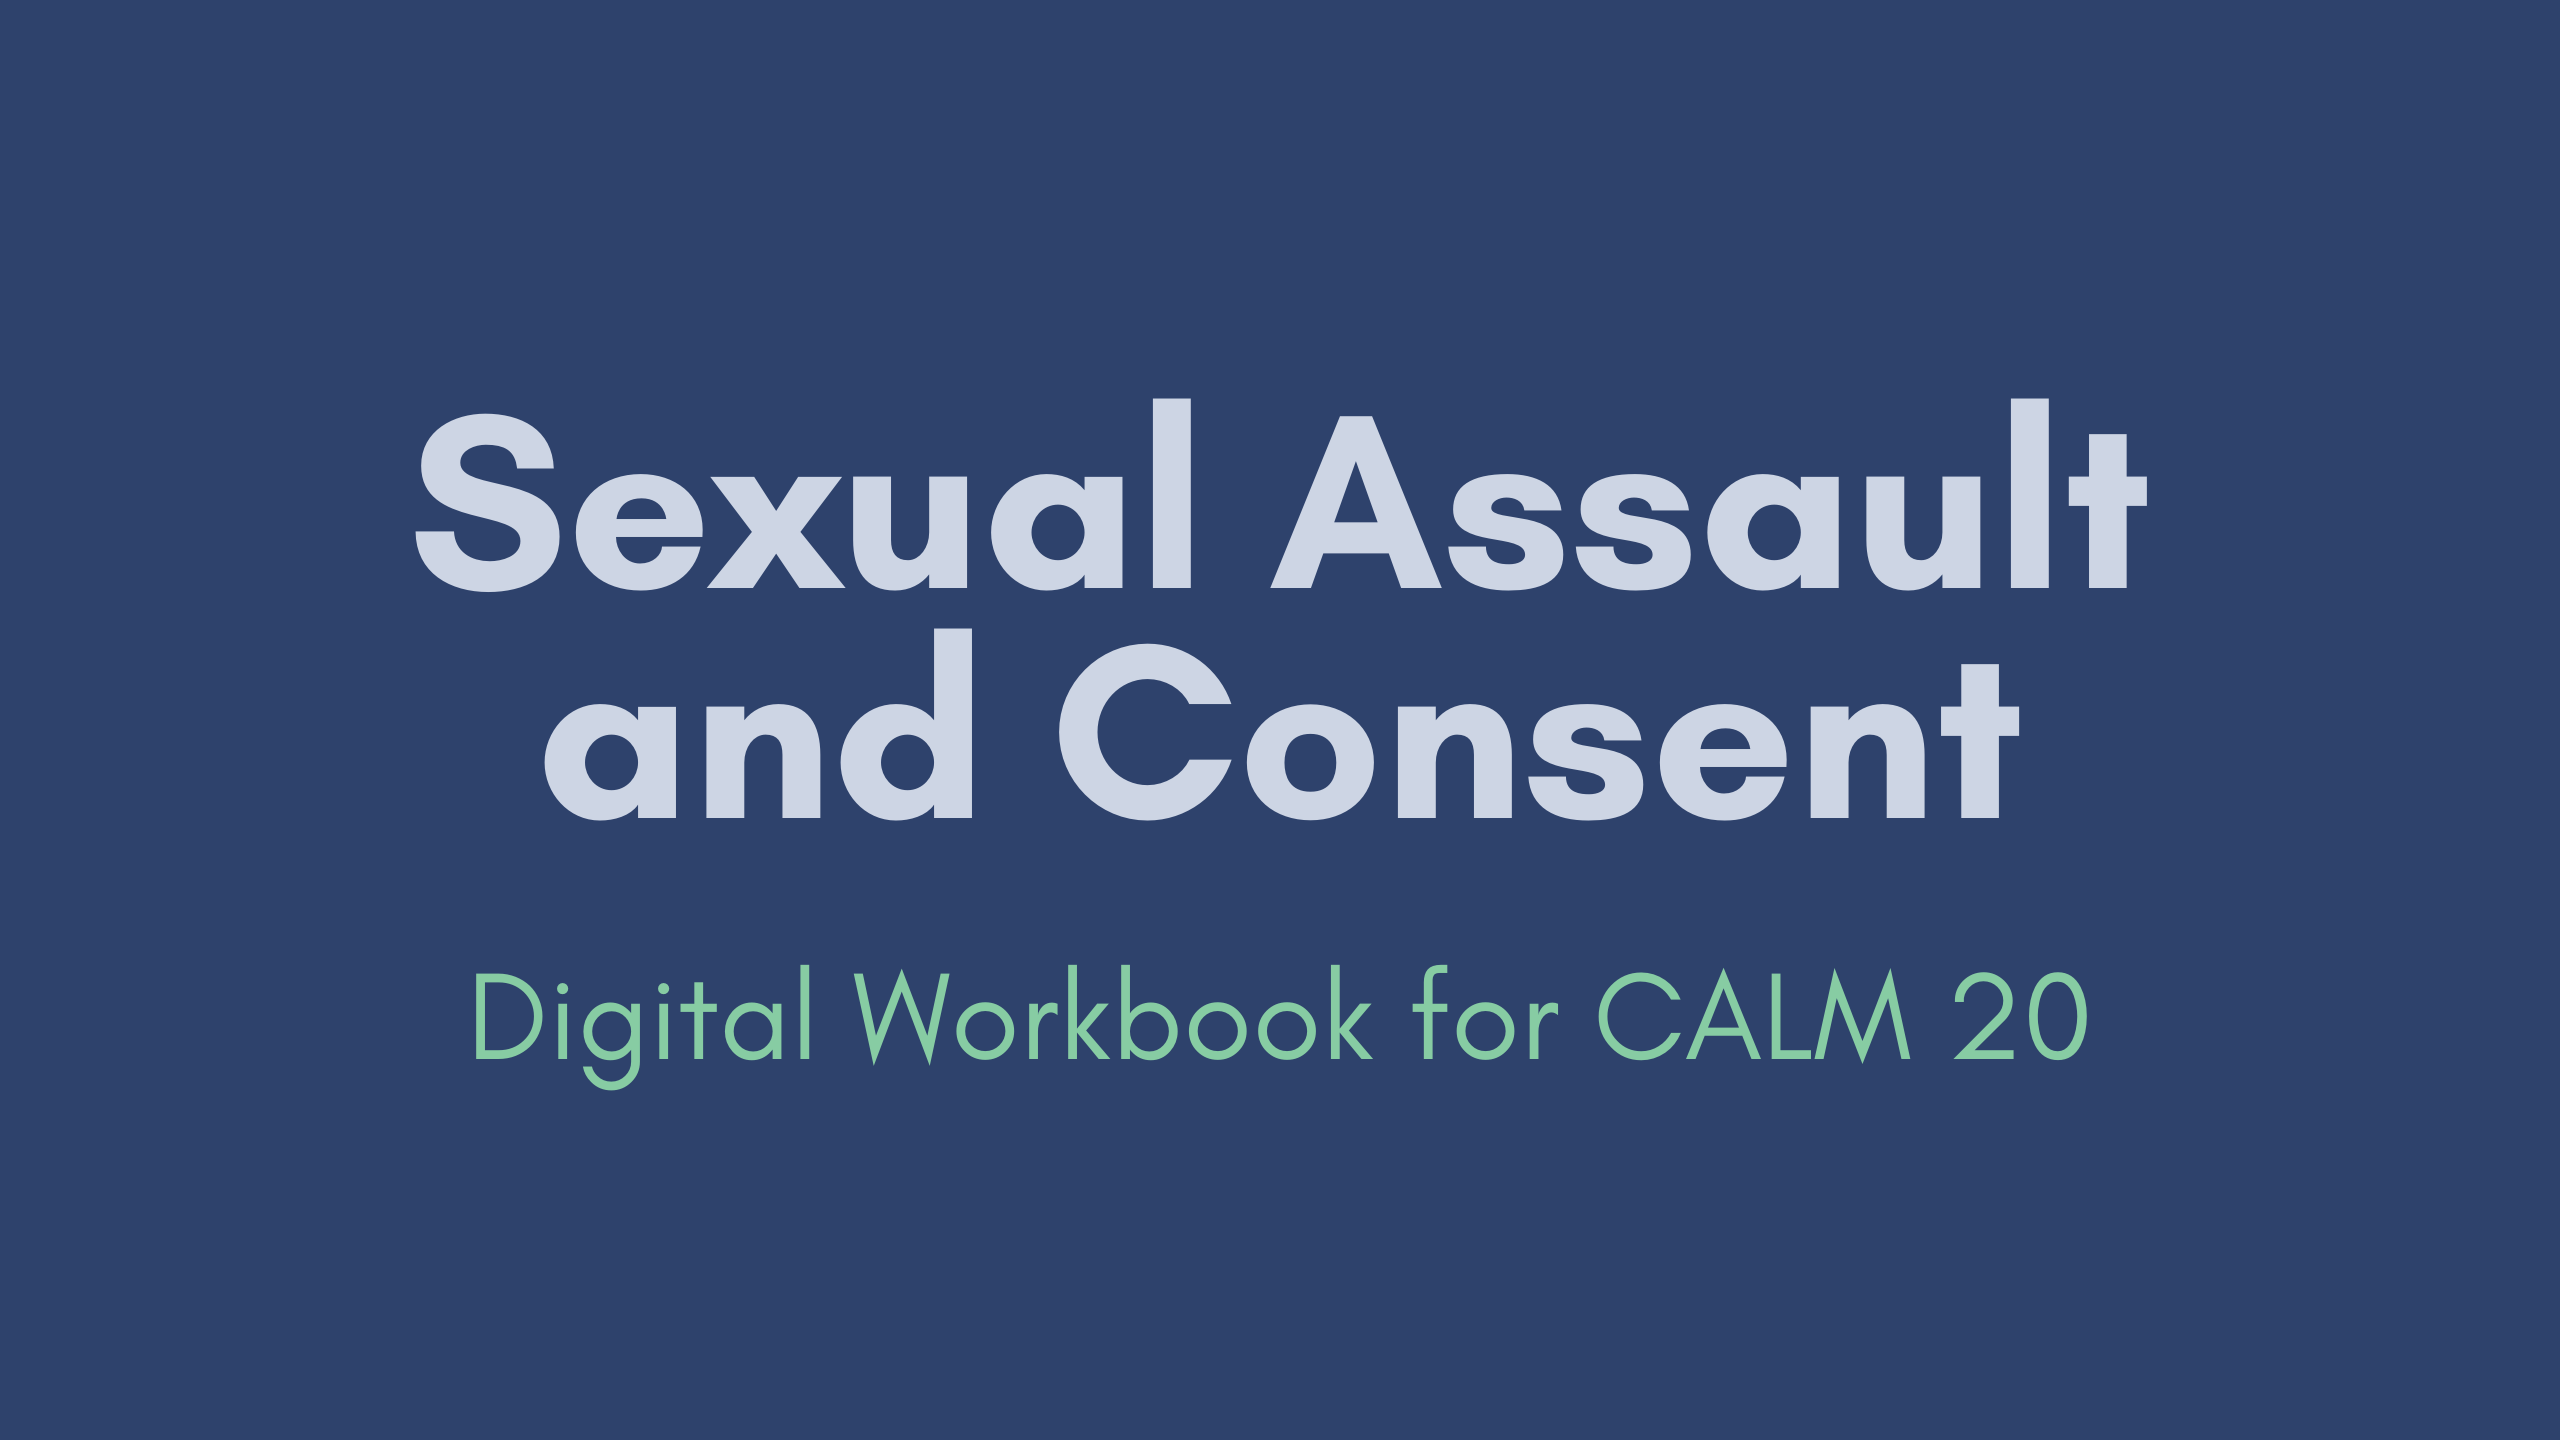 Digital Workbook For CALM 20